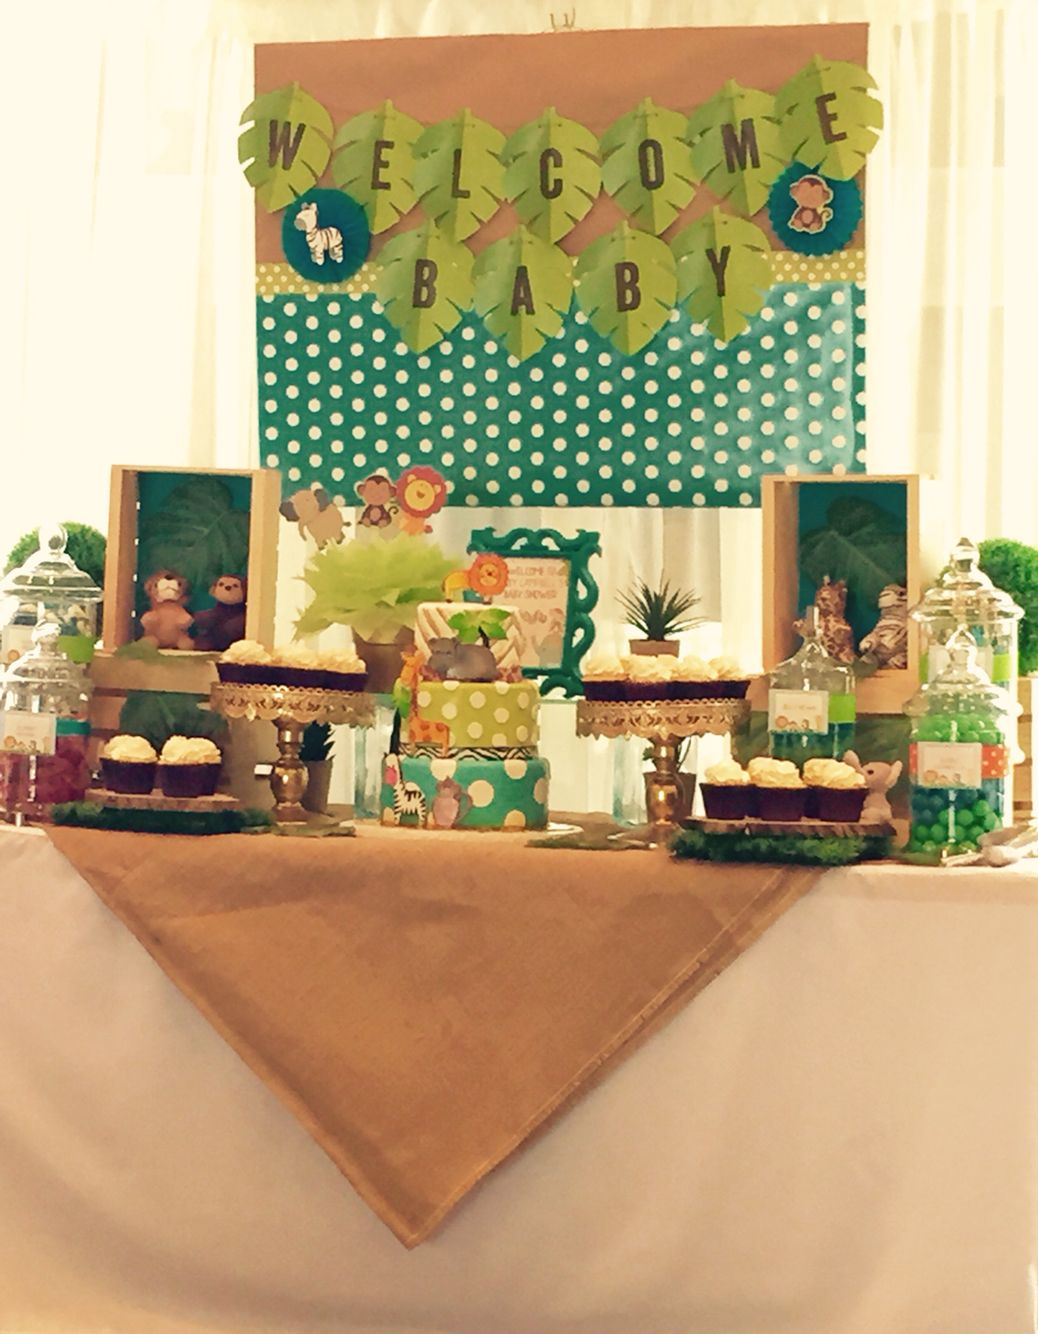 Jungle Theme Baby Shower Table Table Design And Decor By Glam Candy Buffets Cake By Lady Wright S Jungle Baby Shower Theme Zoo Baby Shower Baby Shower Themes